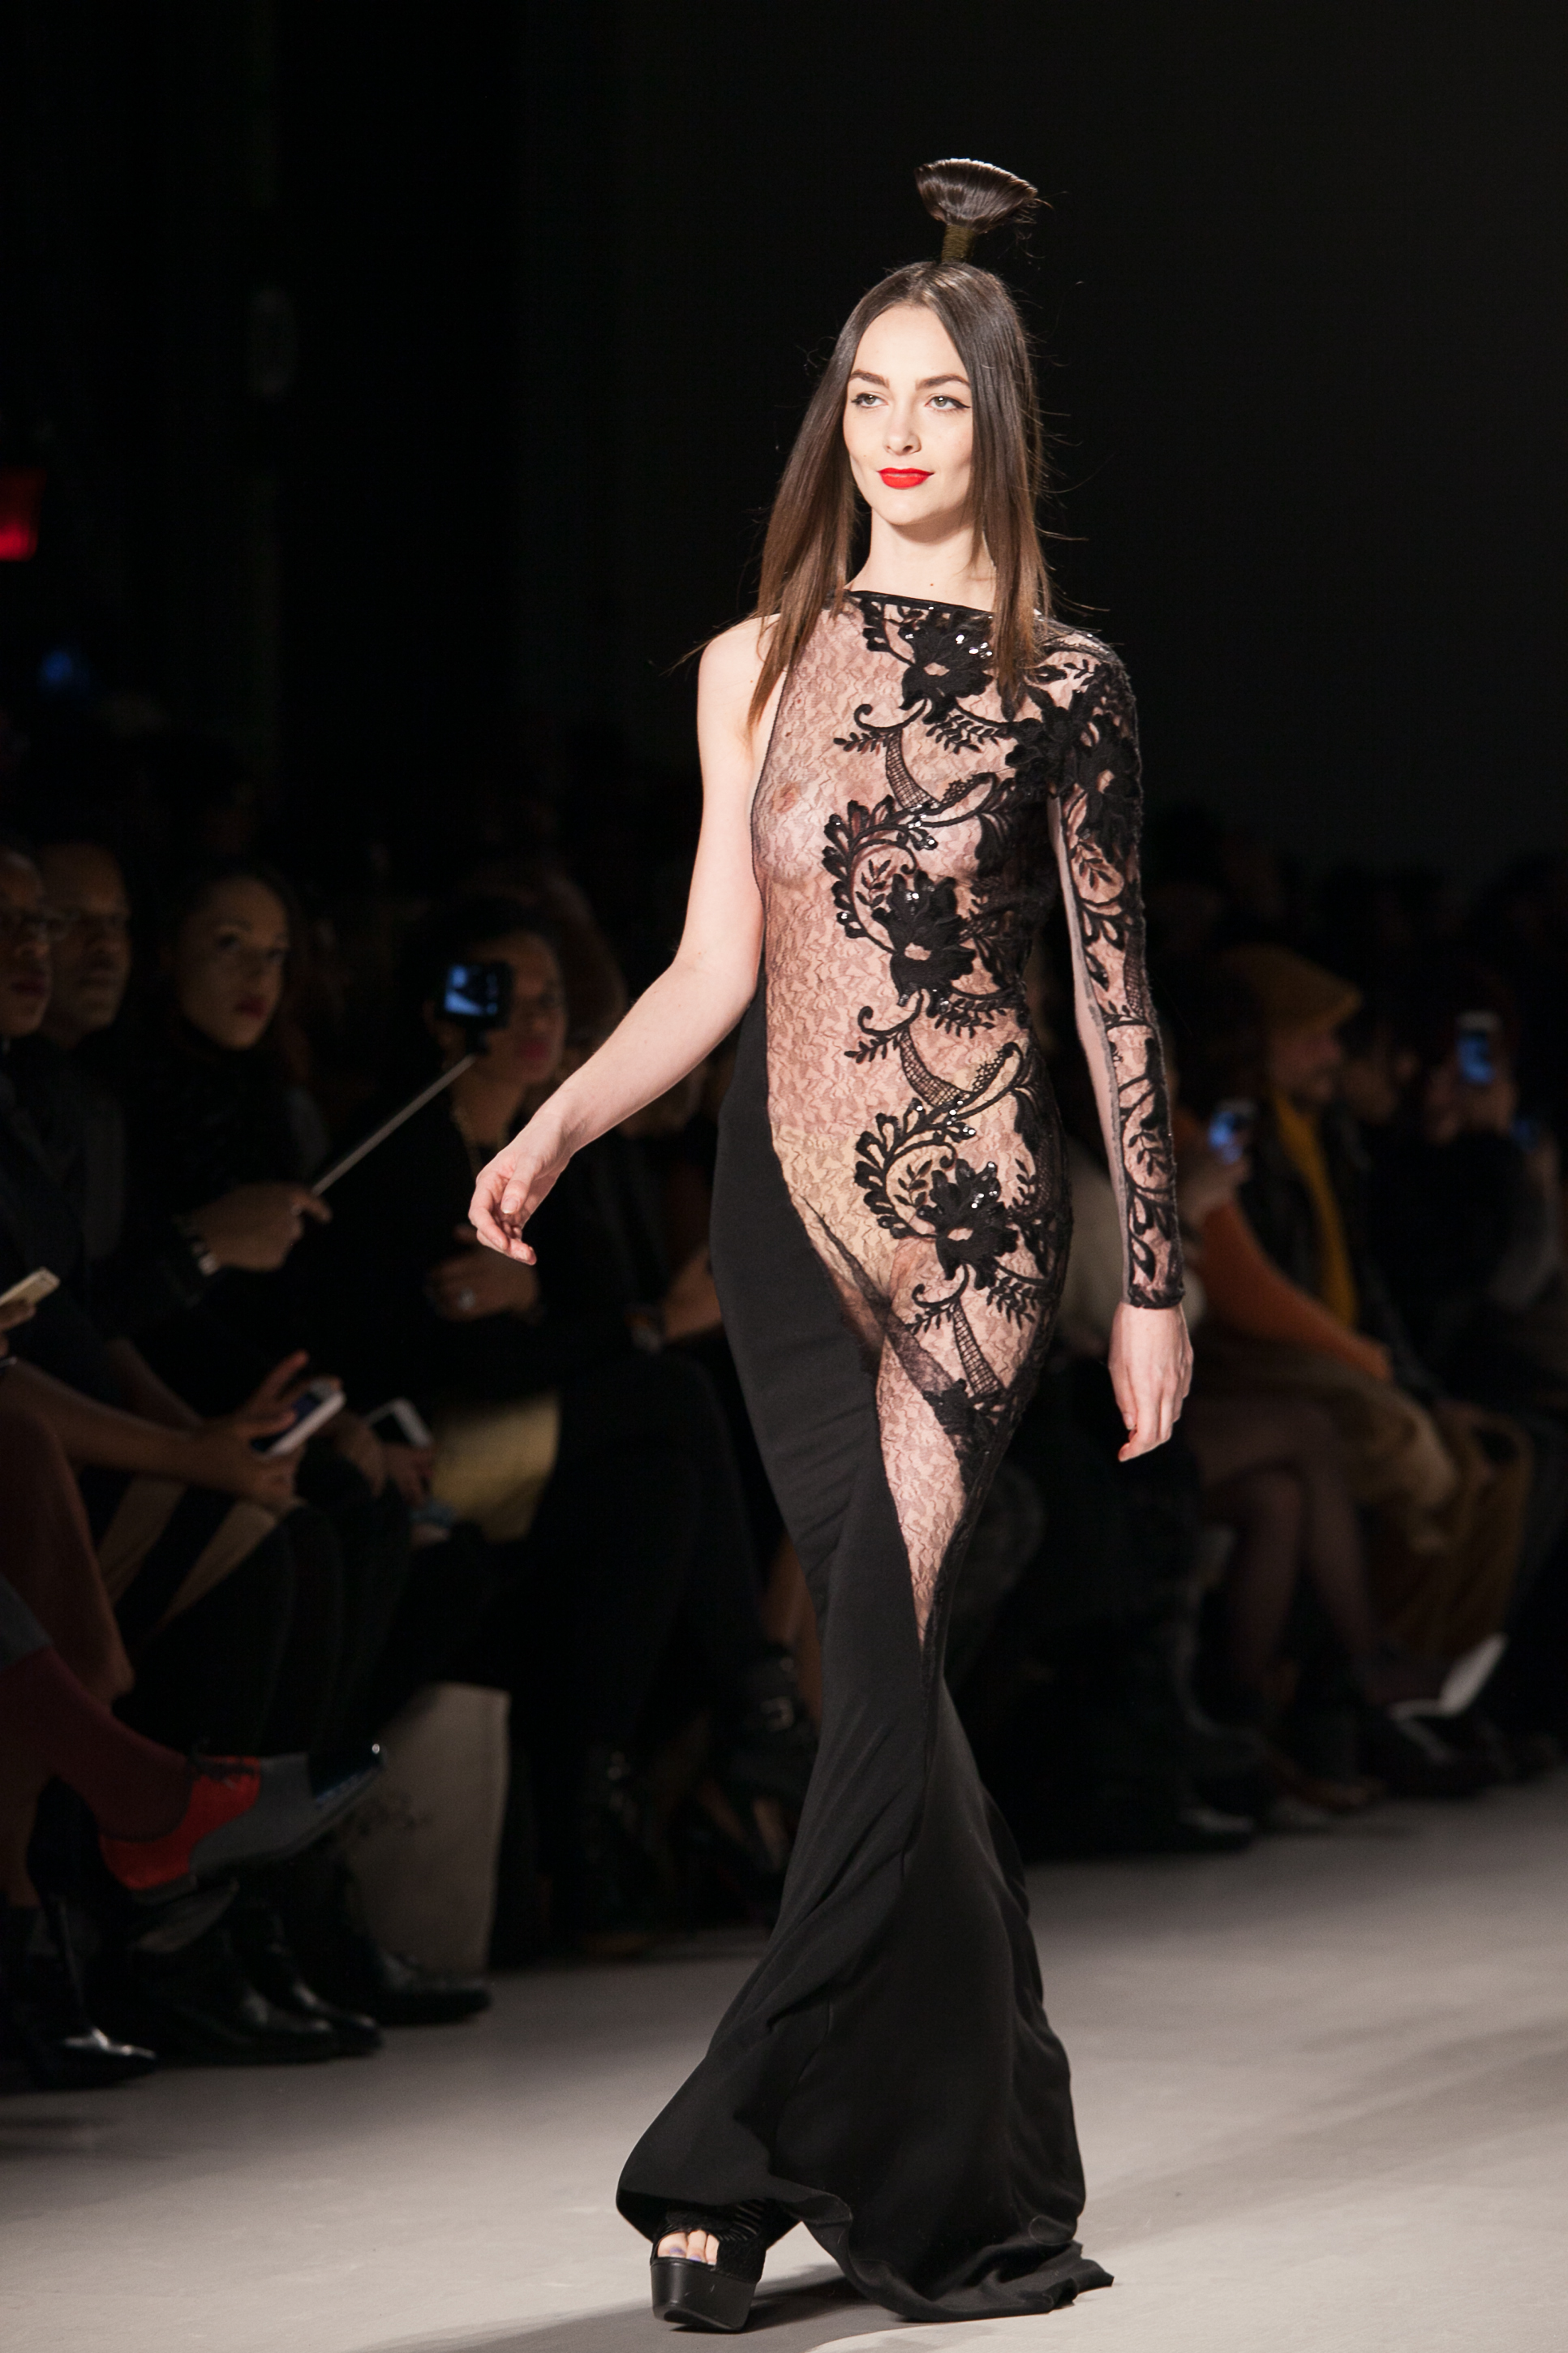 028-Michael-Costello-New-York-Fashion-Week-Fall-Winter-2015-Shana-Schnur-Photography-028.jpg